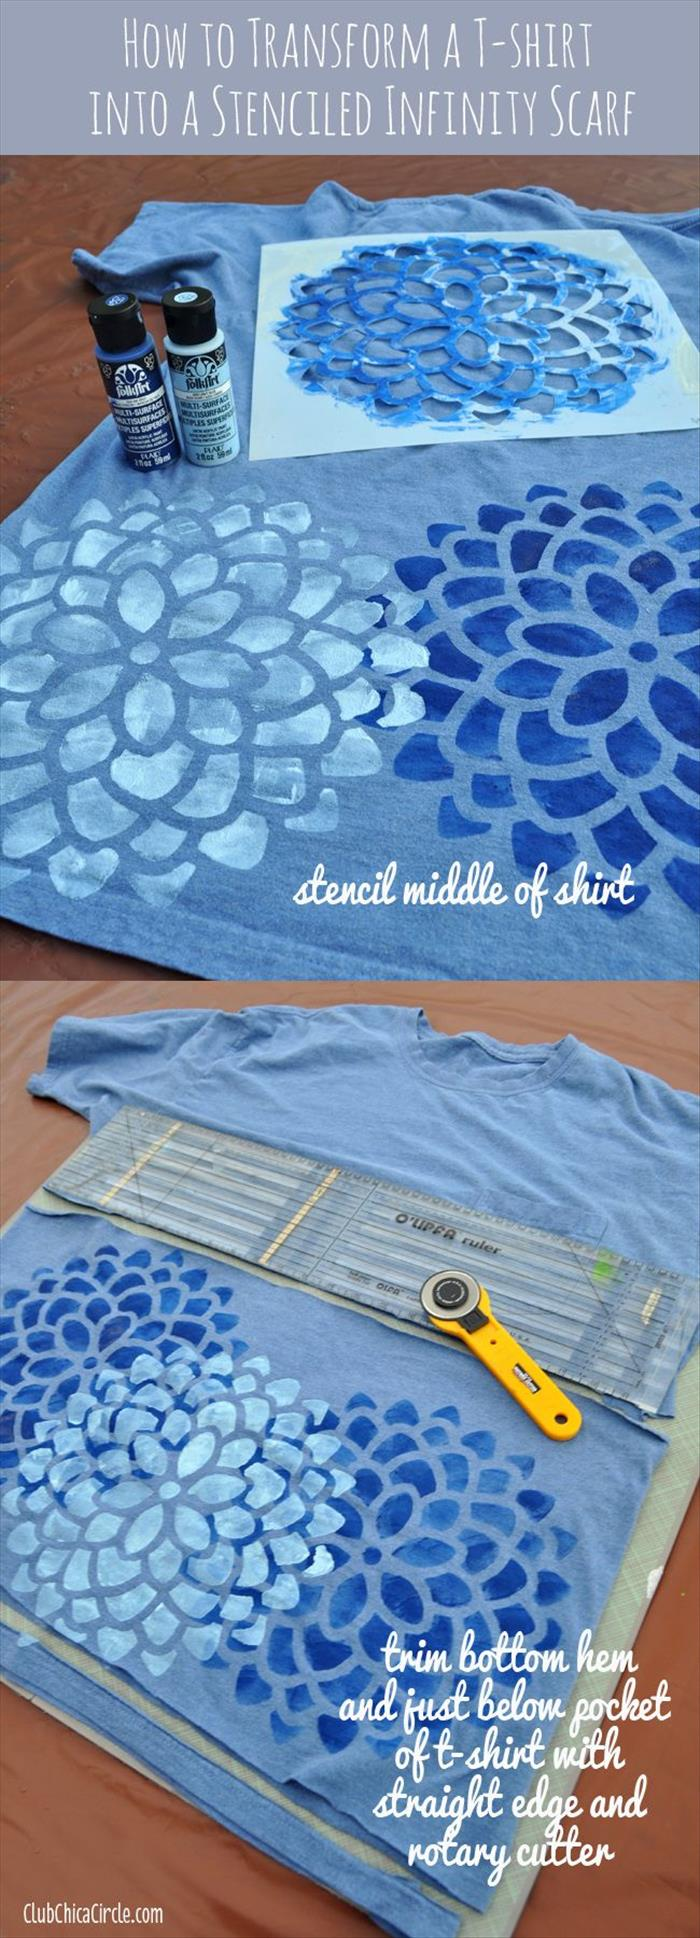 Stenciled Infinity Scarf